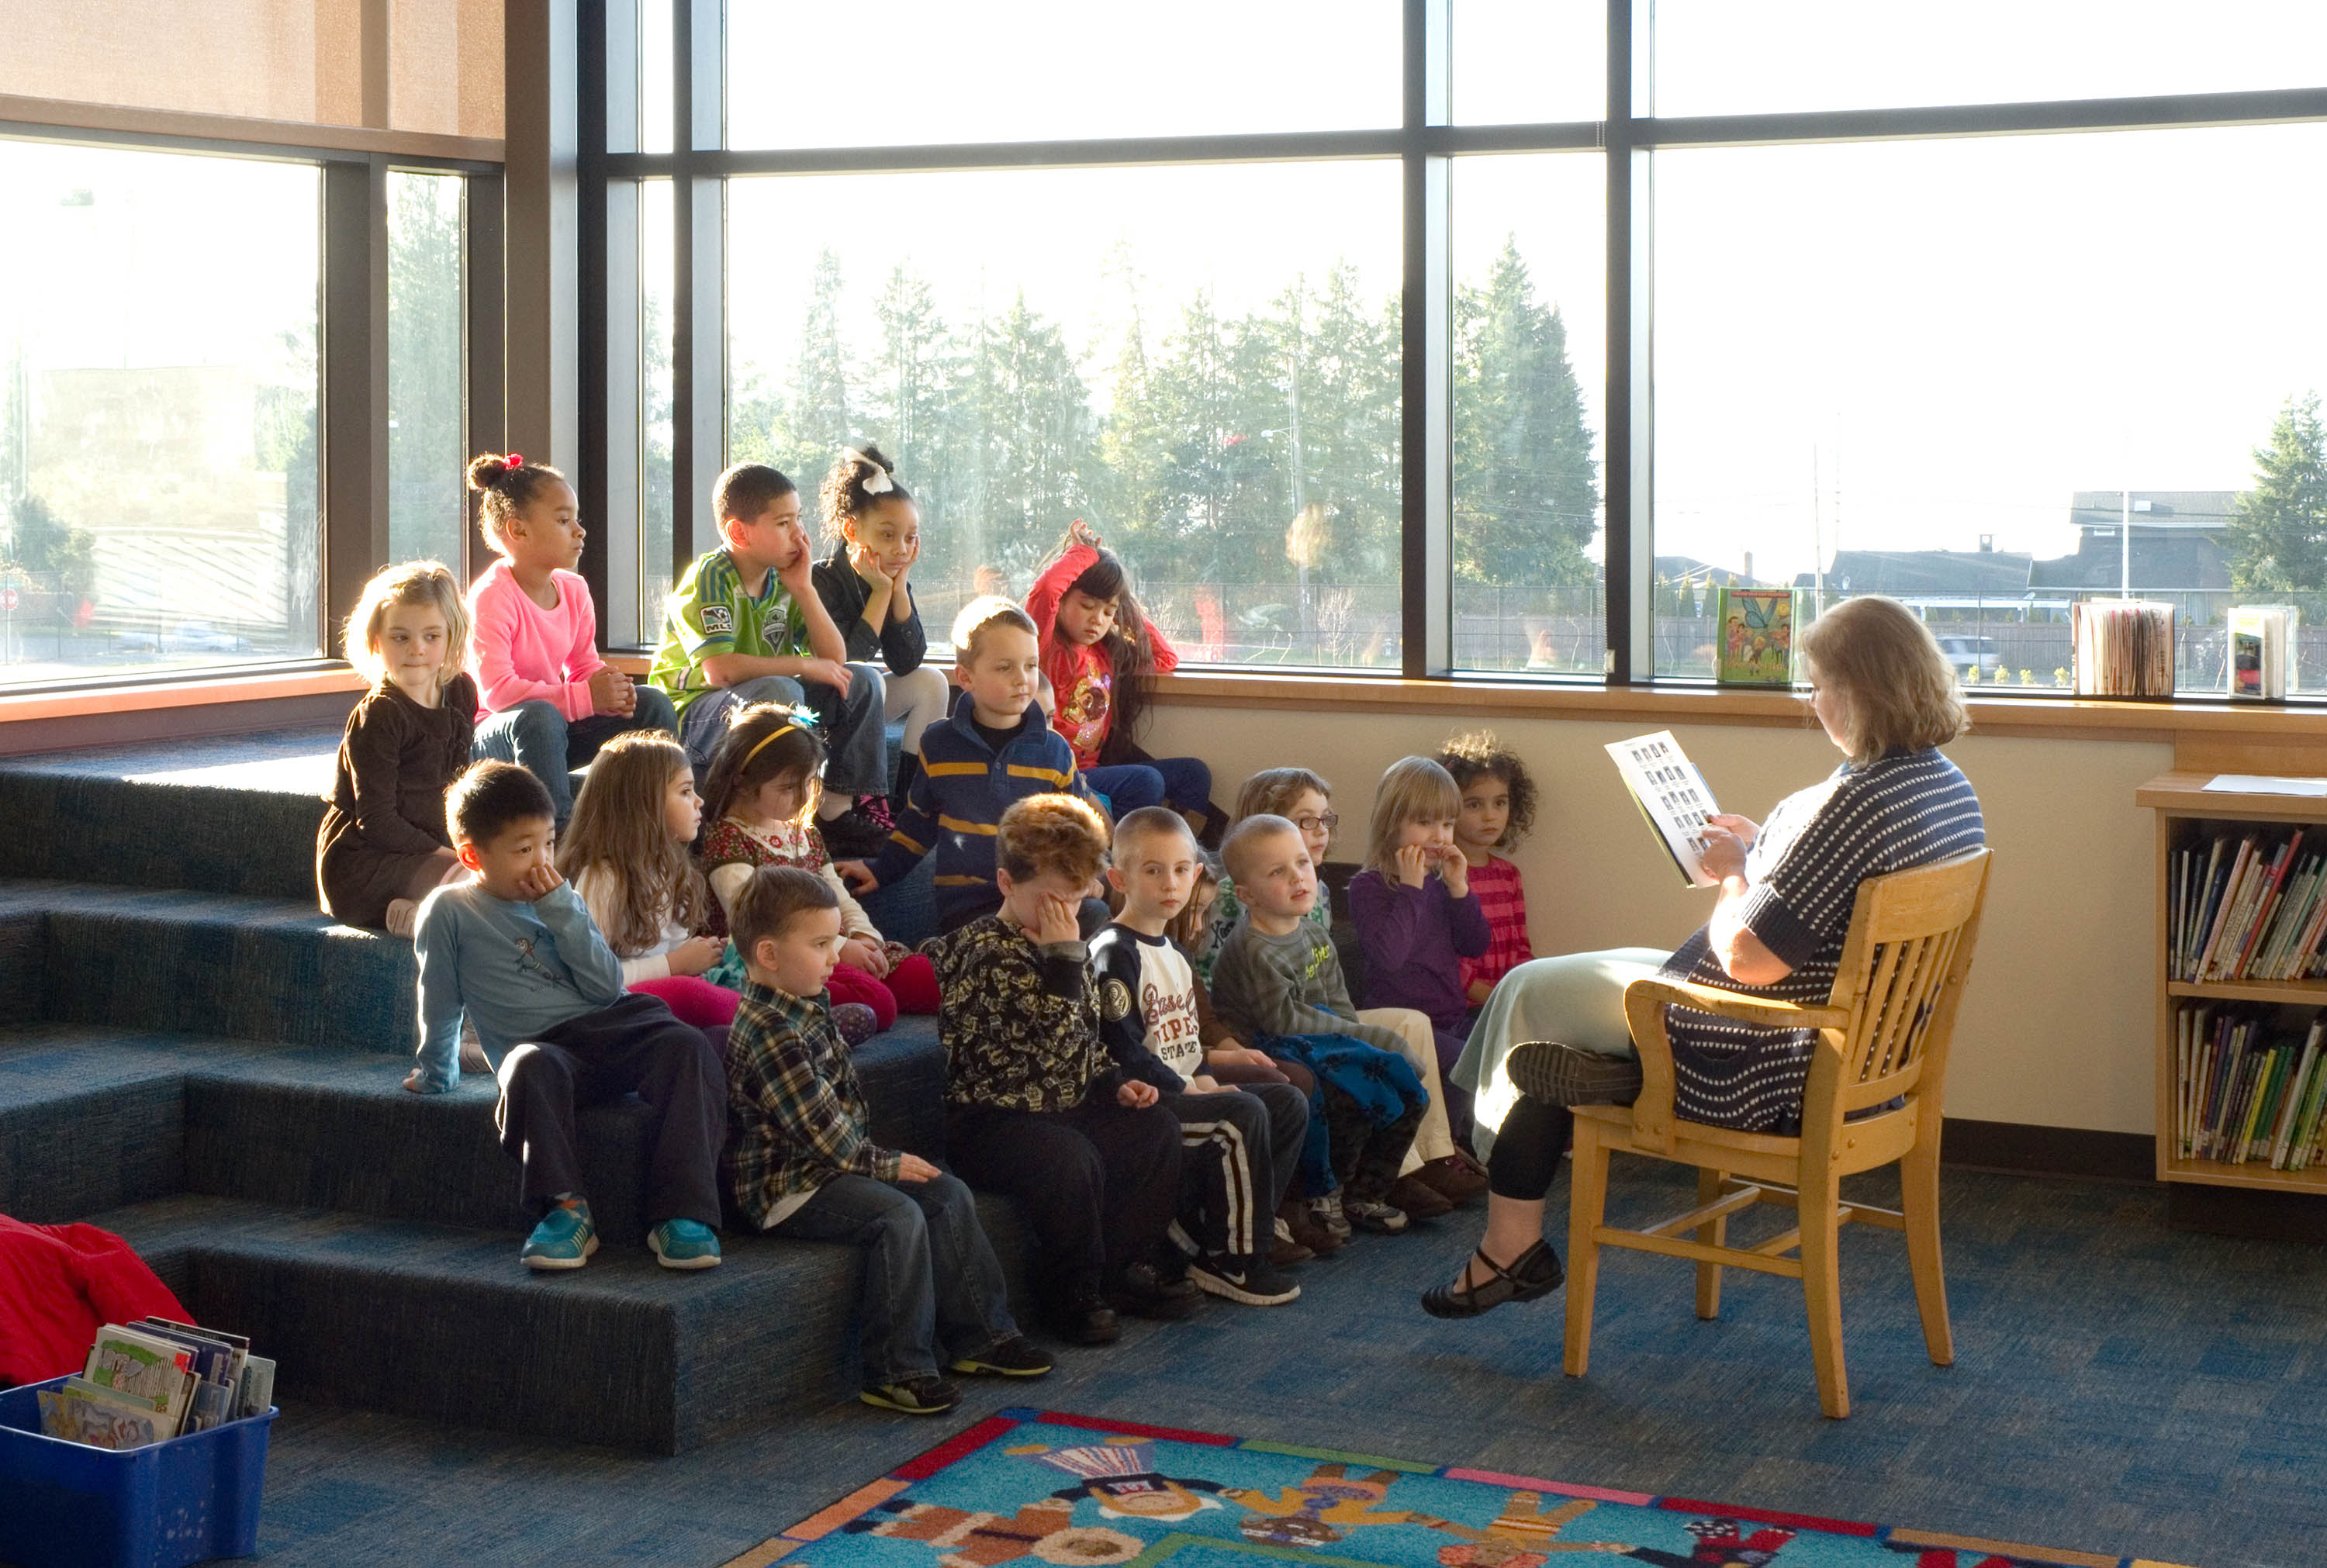 A teacher reading to a group of students in the library.